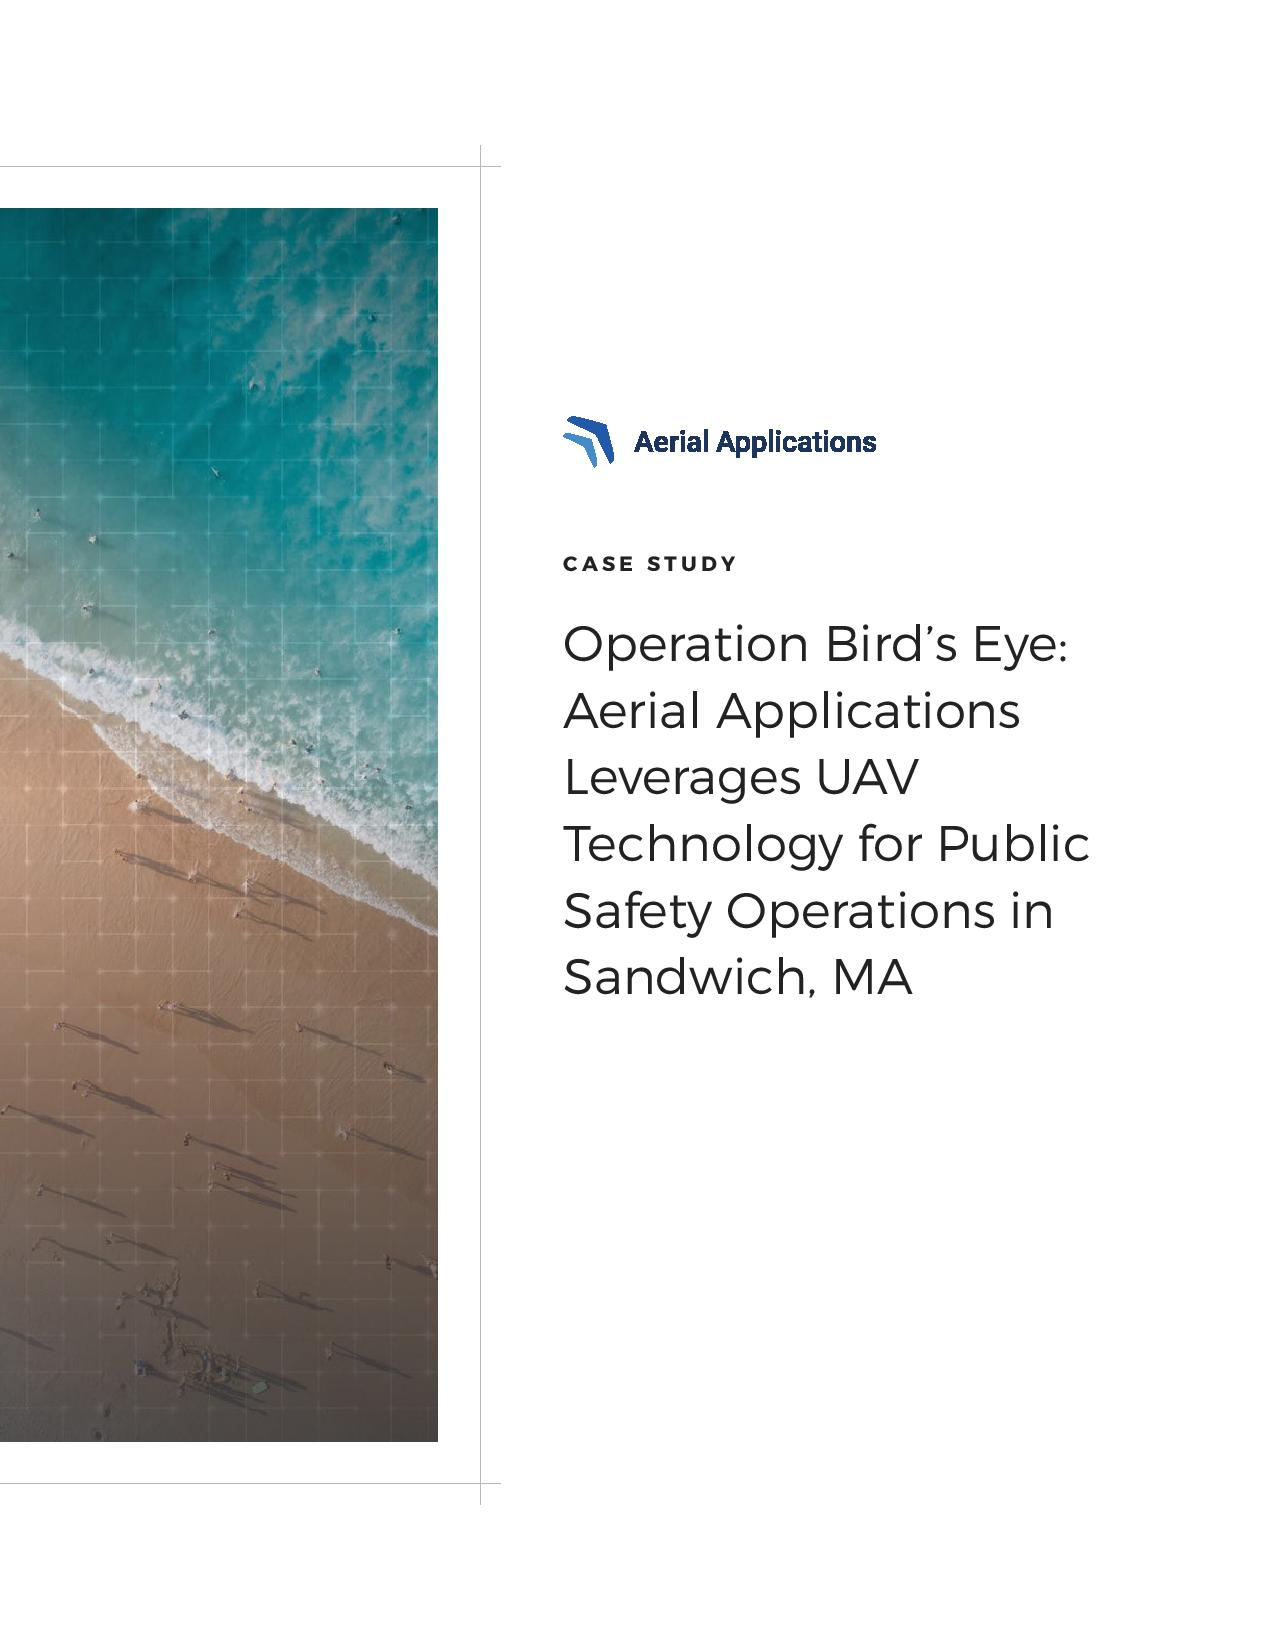 Aerial_Applications_Operation_Birds_Eye_Case_Study_Featured_Image